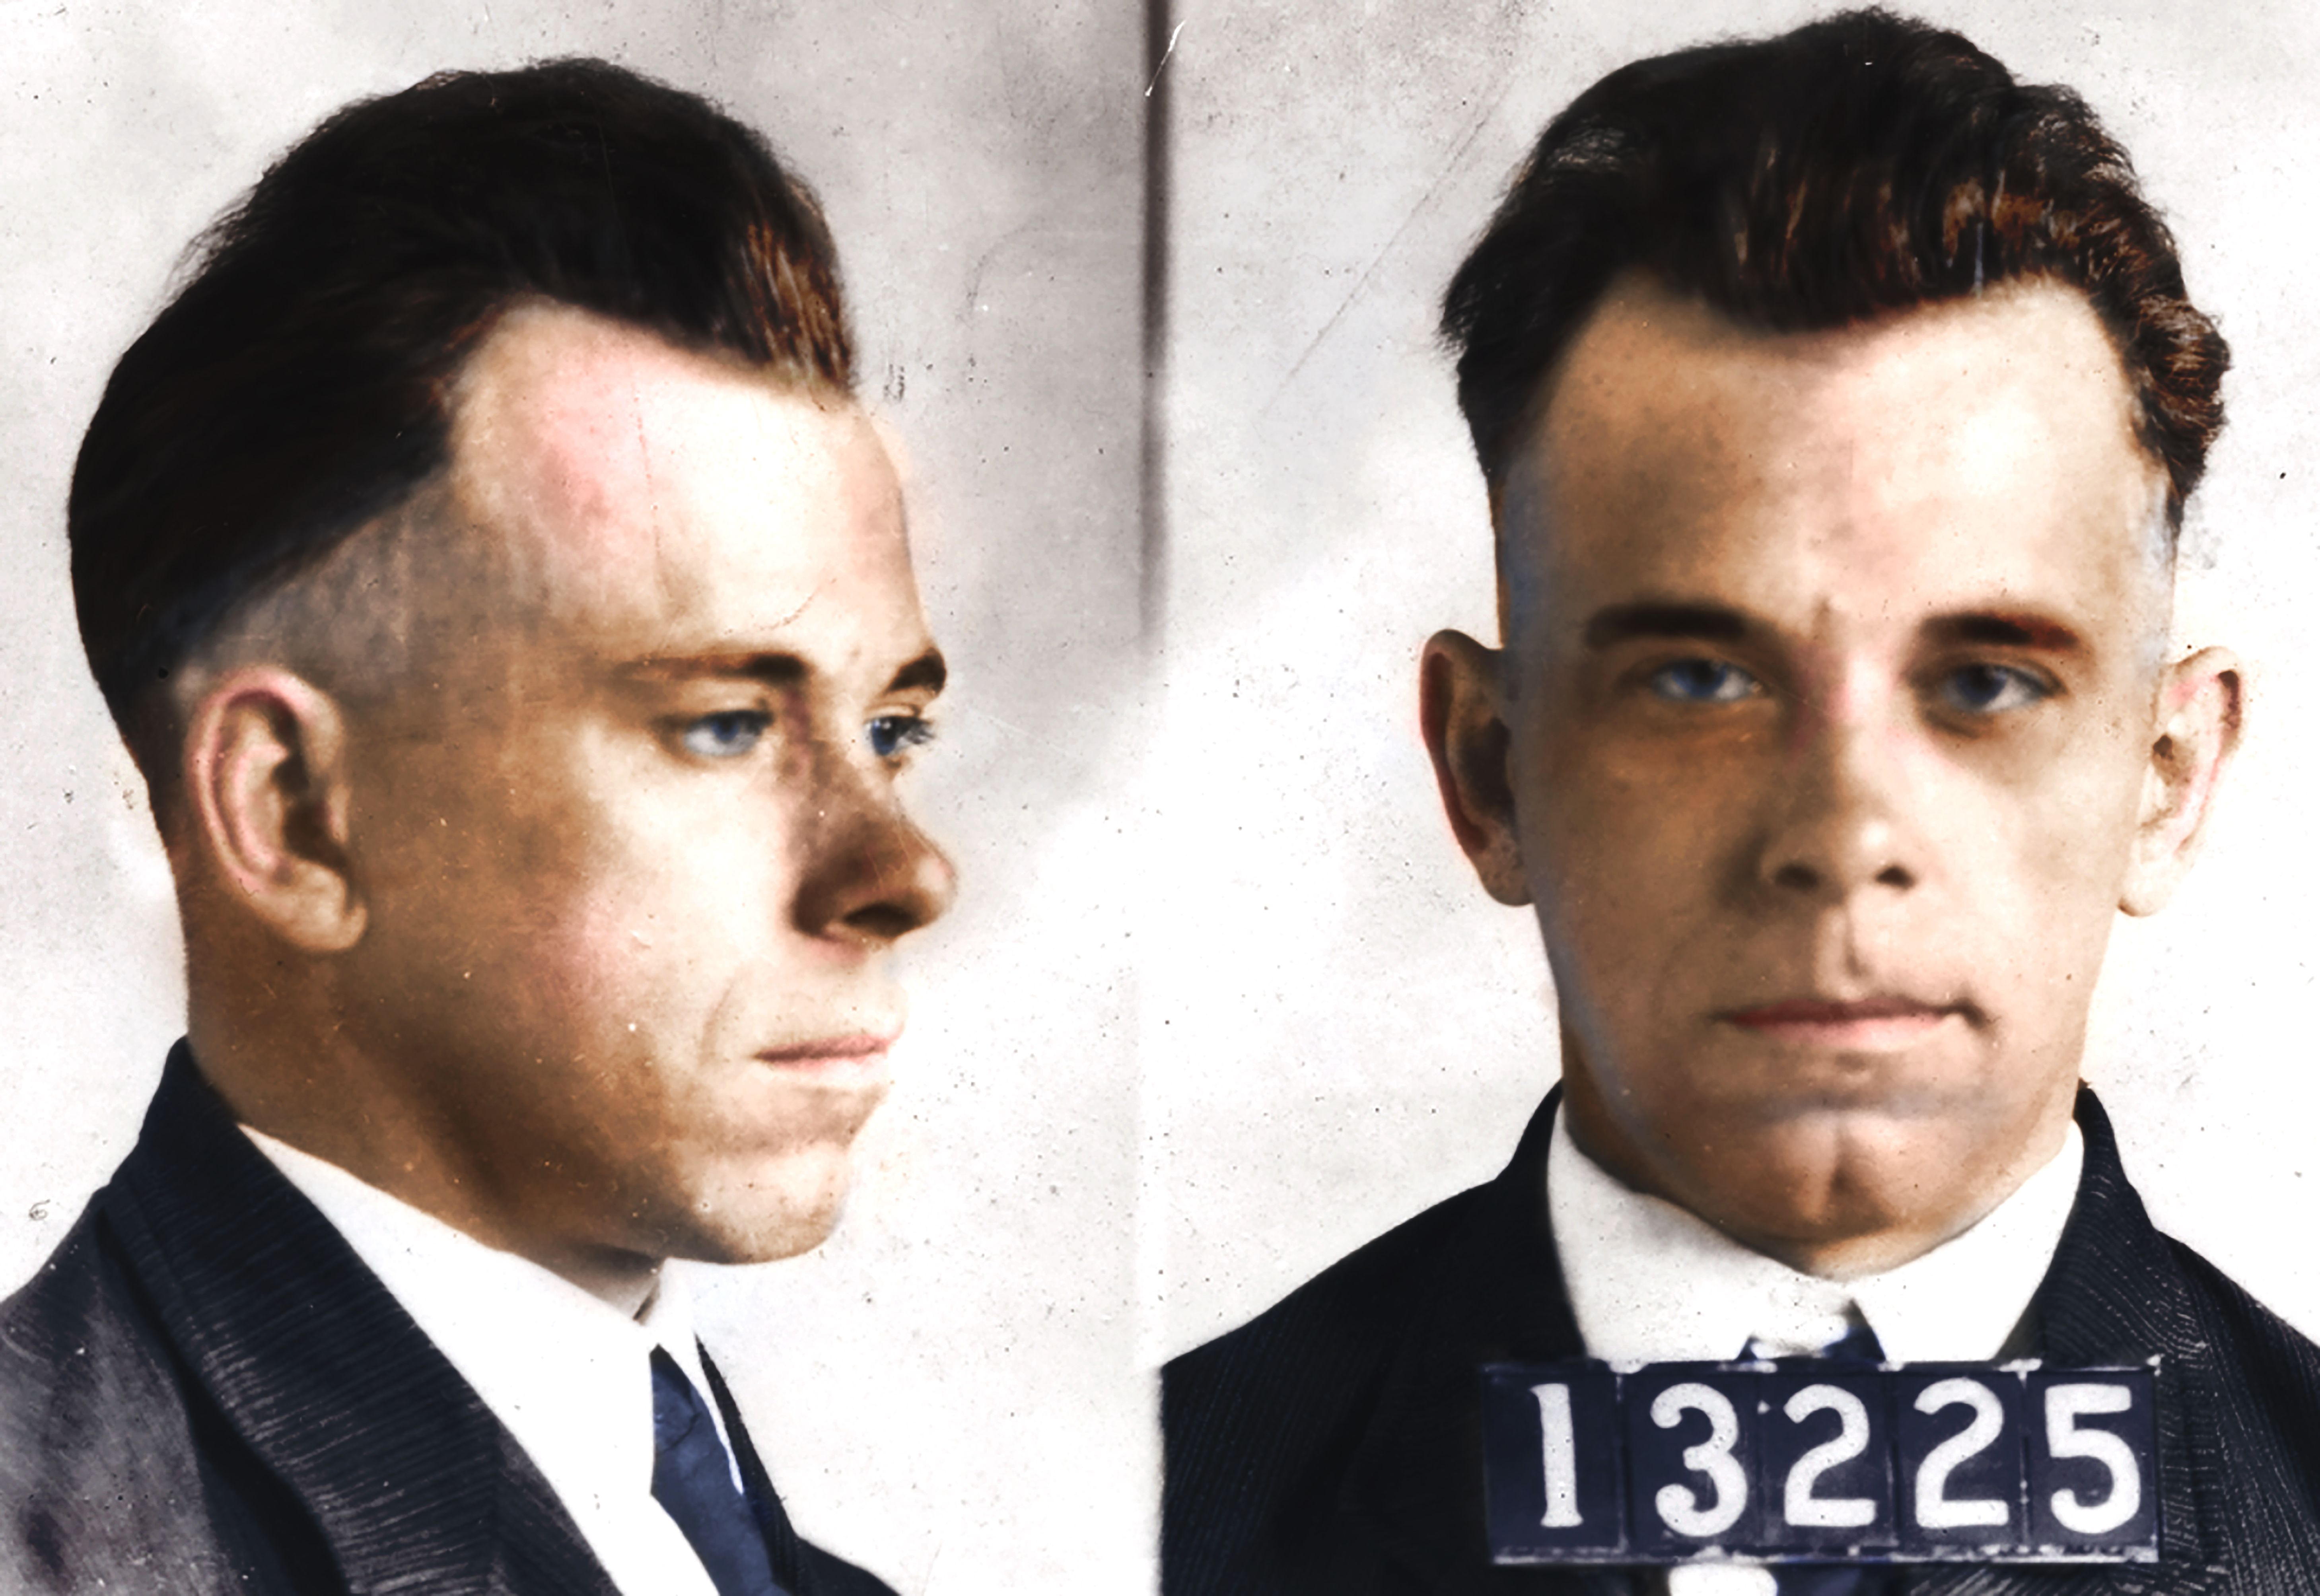 Ingenious Great Bank Robber John Dillinger In Chicago Other Historical Memorabilia Hunted In Midwest 1934 Newspaper Crazy Price Mobs, Gangsters & Criminals